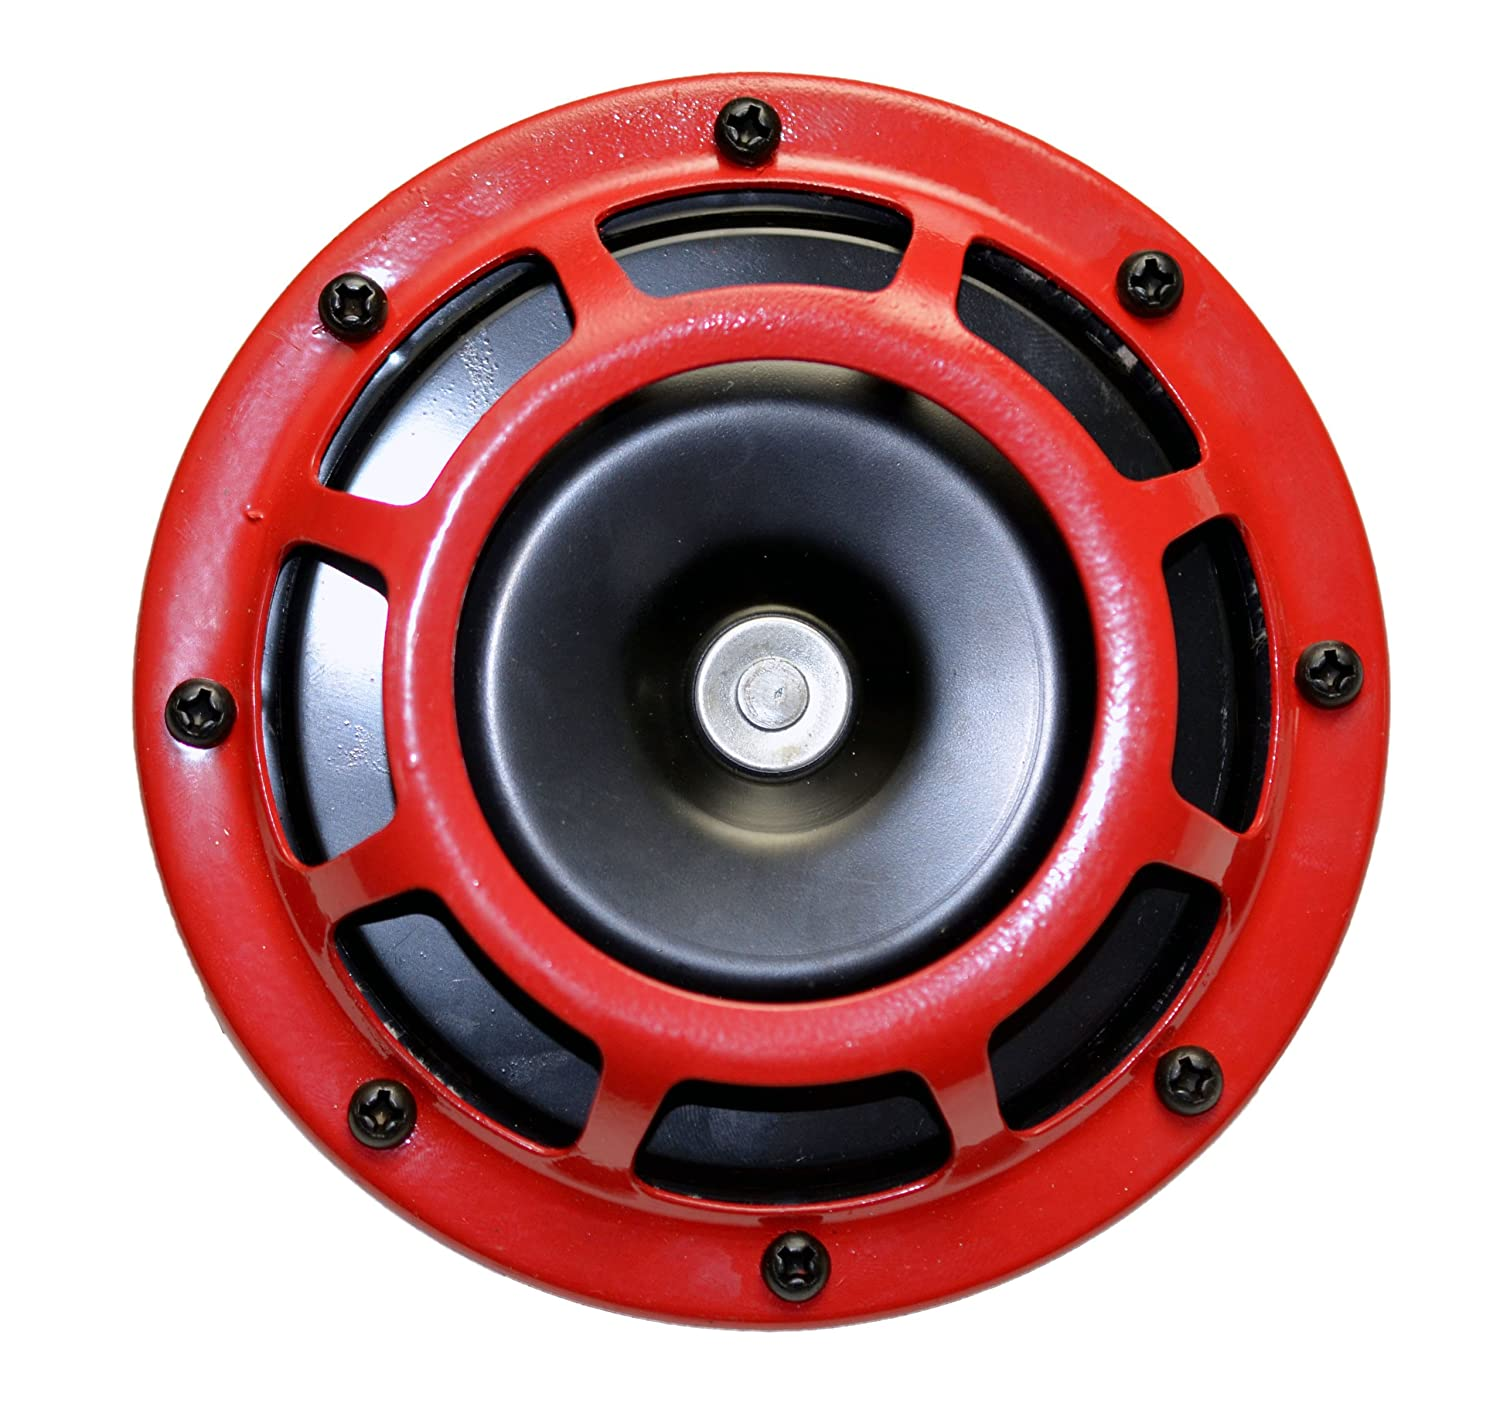 Extremely LOUD for Car Bike Motorcycle Truck for Audi A1 A2 A3 S3 RS3 A4 S4 RS4 A5 S5 RS5 A6 S6 RS6 Allroad A7 U2123 High Tone // Low Tone Twin Horn Kit with Bracket Pair Compact DUAL Super Tone LOUD Blast 139Db Universal Euro RED ROUND HORNS Quantity 2